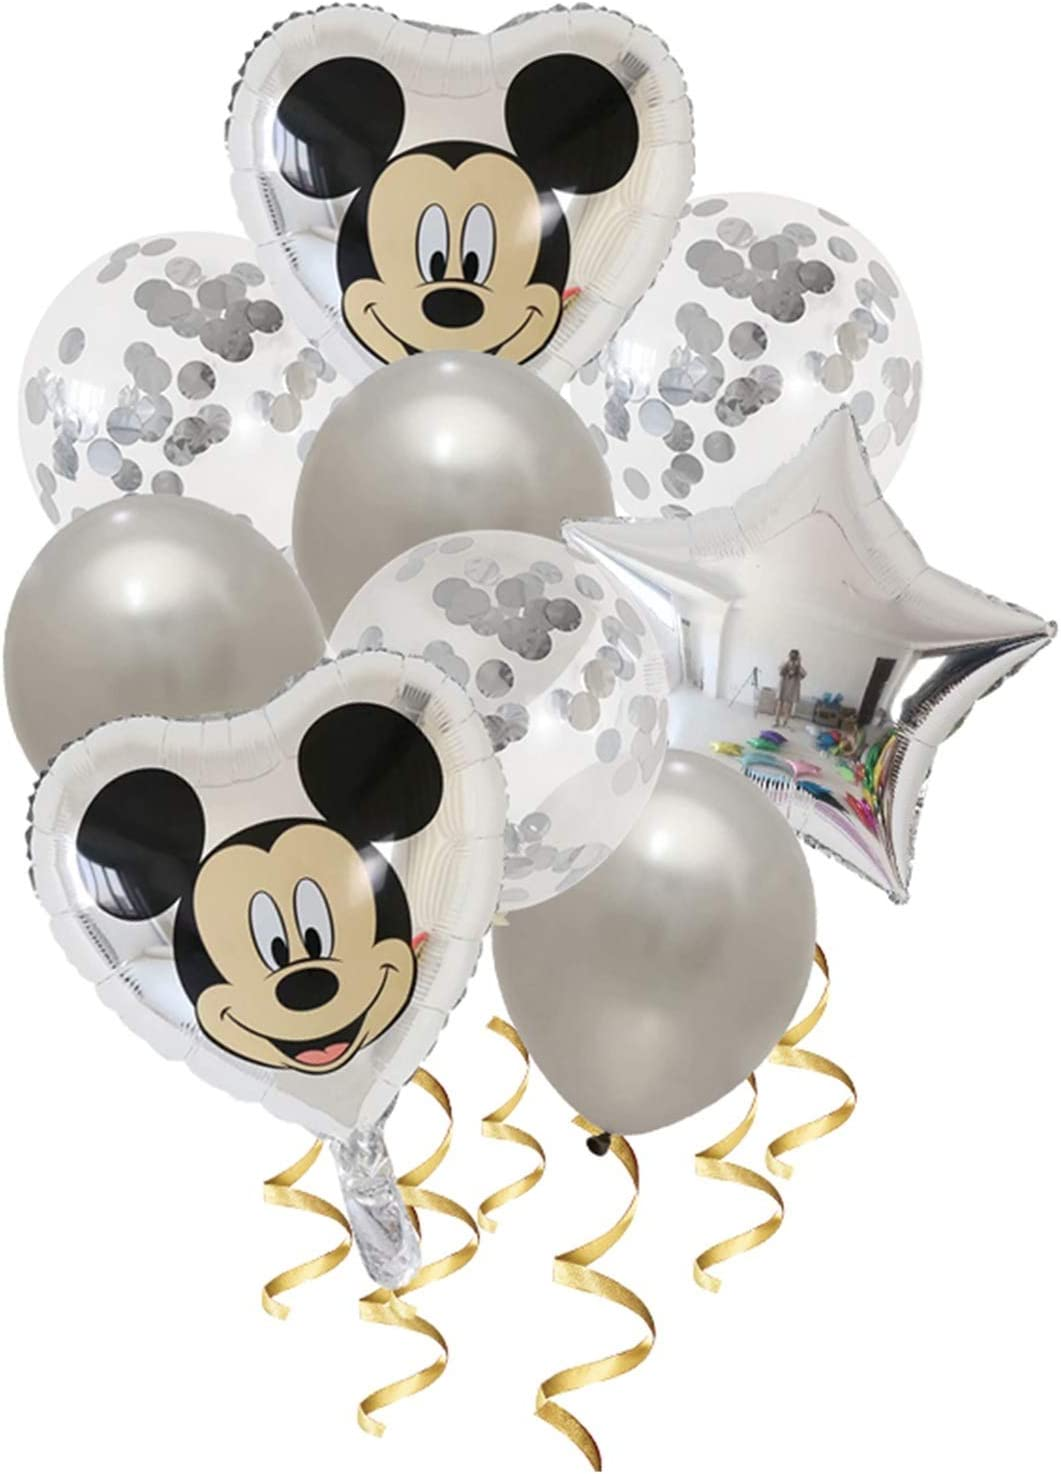 Fuxwlgs Ranking TOP11 Balloons 9pcs Balloon Decorations Birthday OFFicial Party